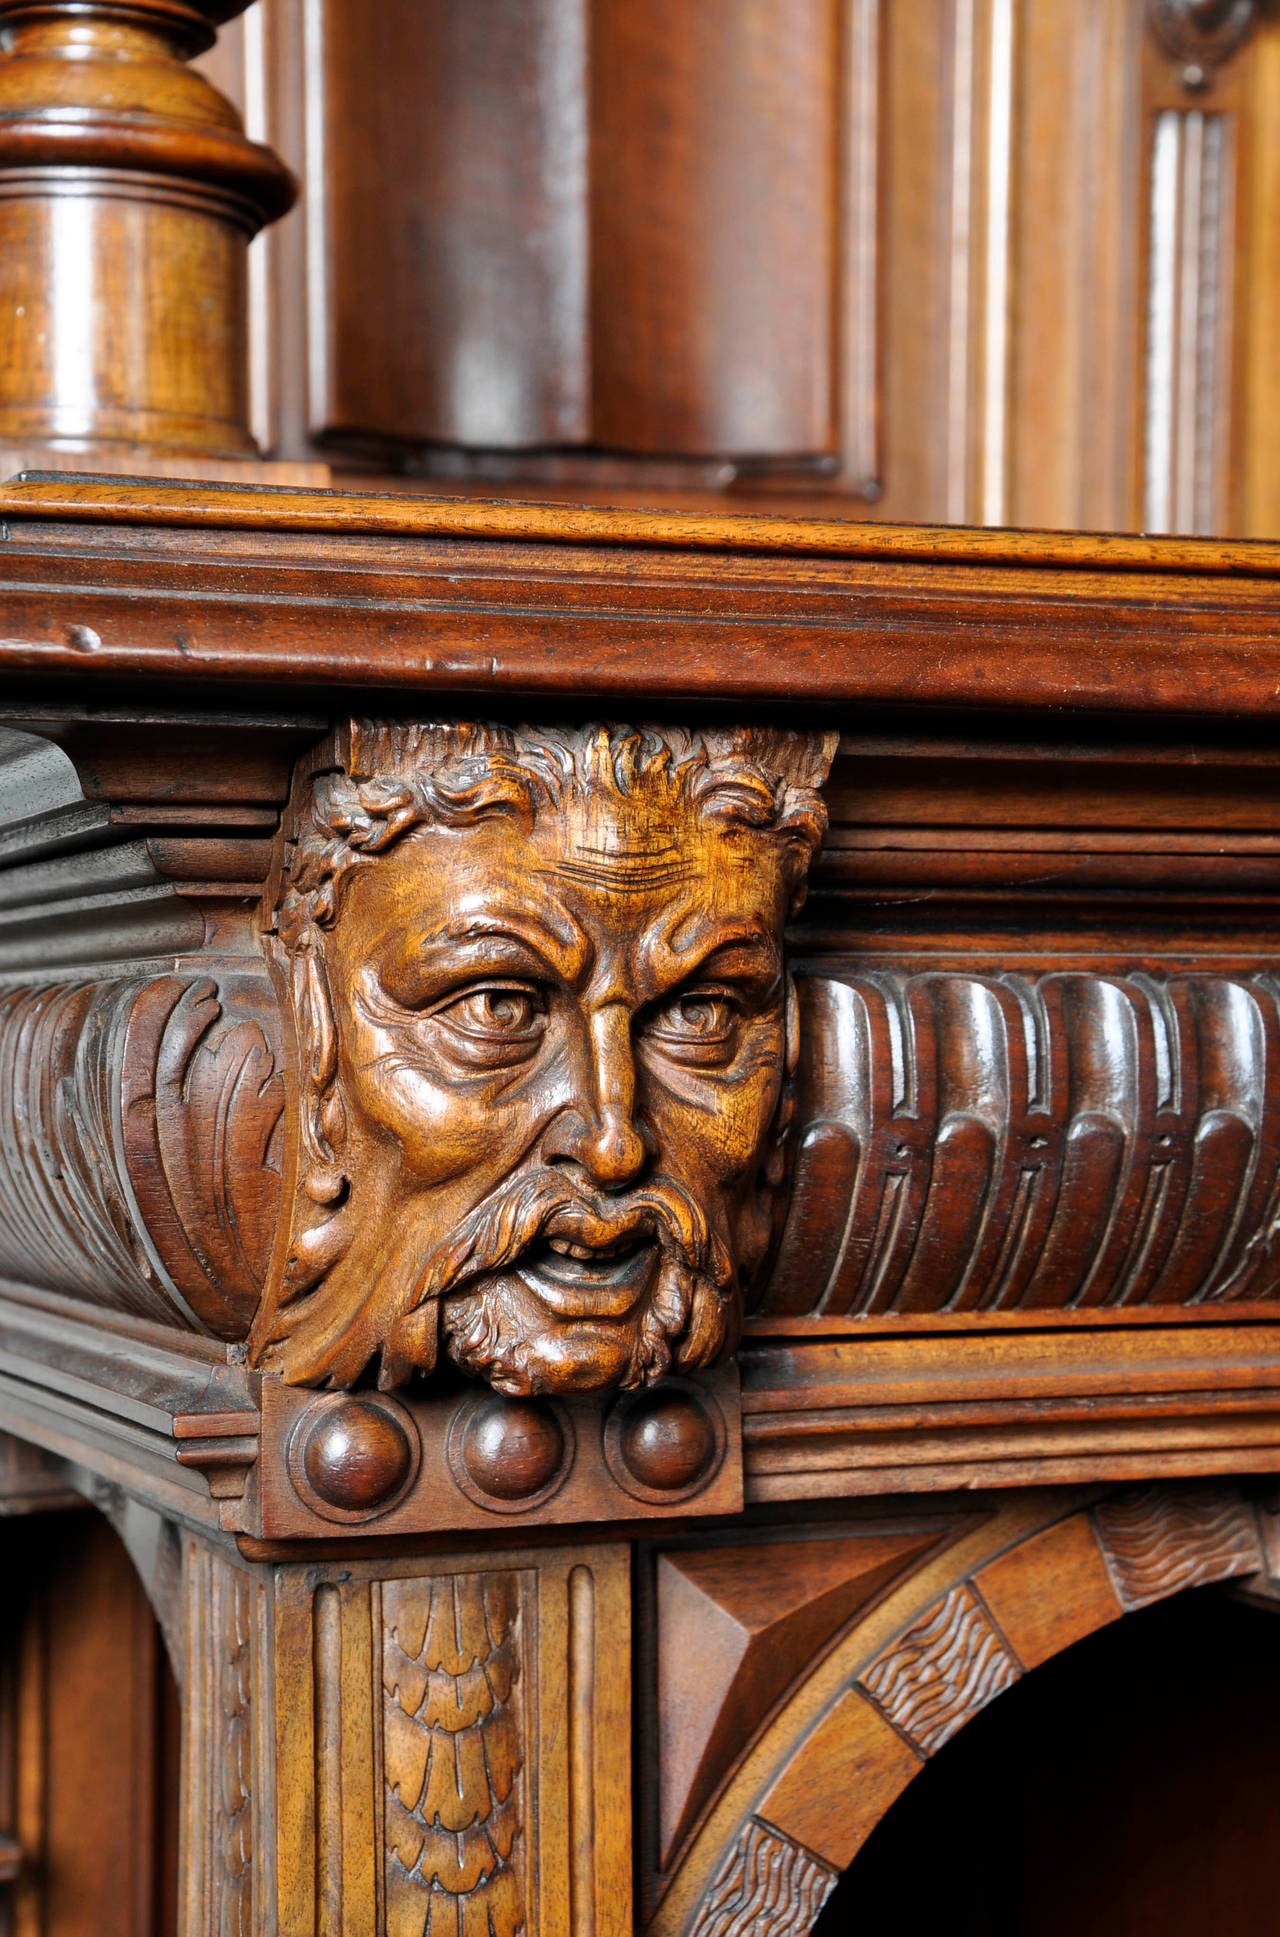 Neo gothic style carved walnut dresser with satyrs decor